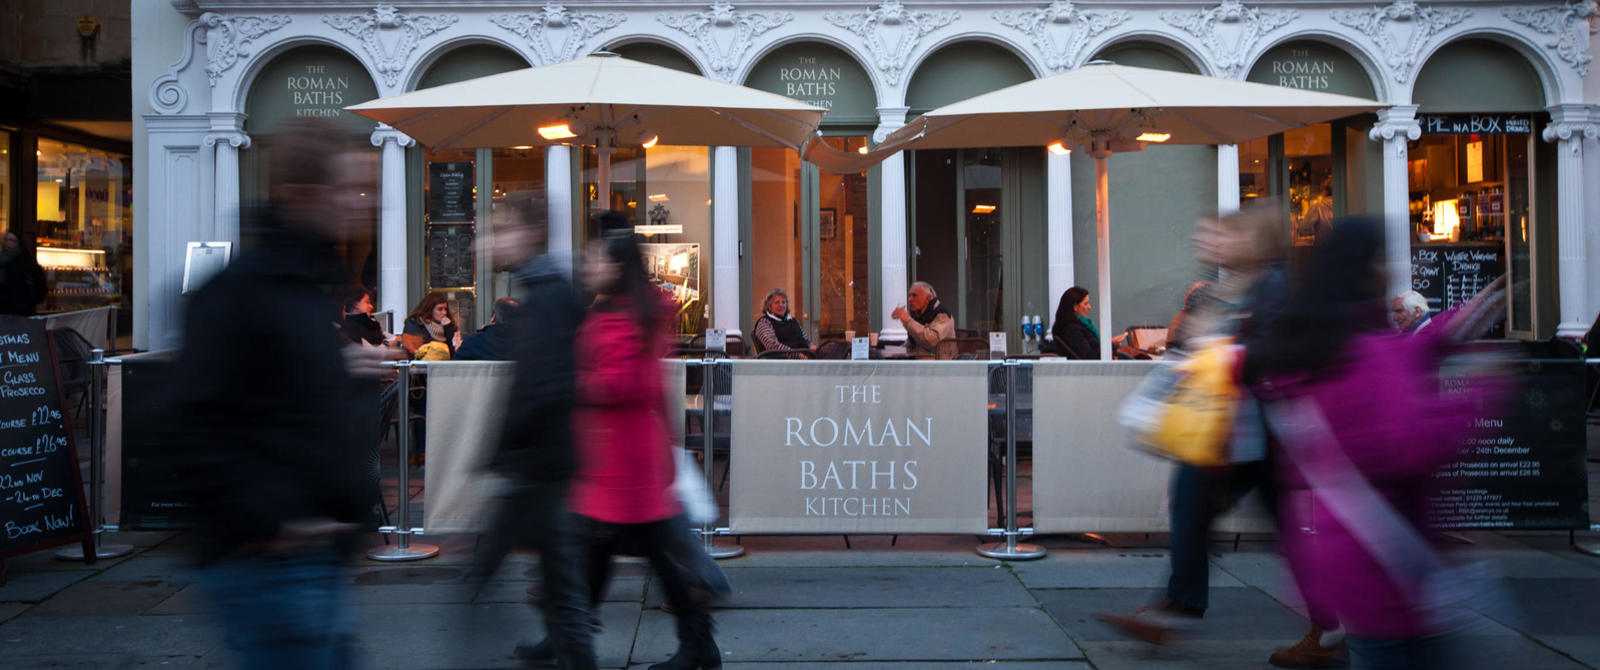 Image: Exterior of the Roman Baths Kitchen